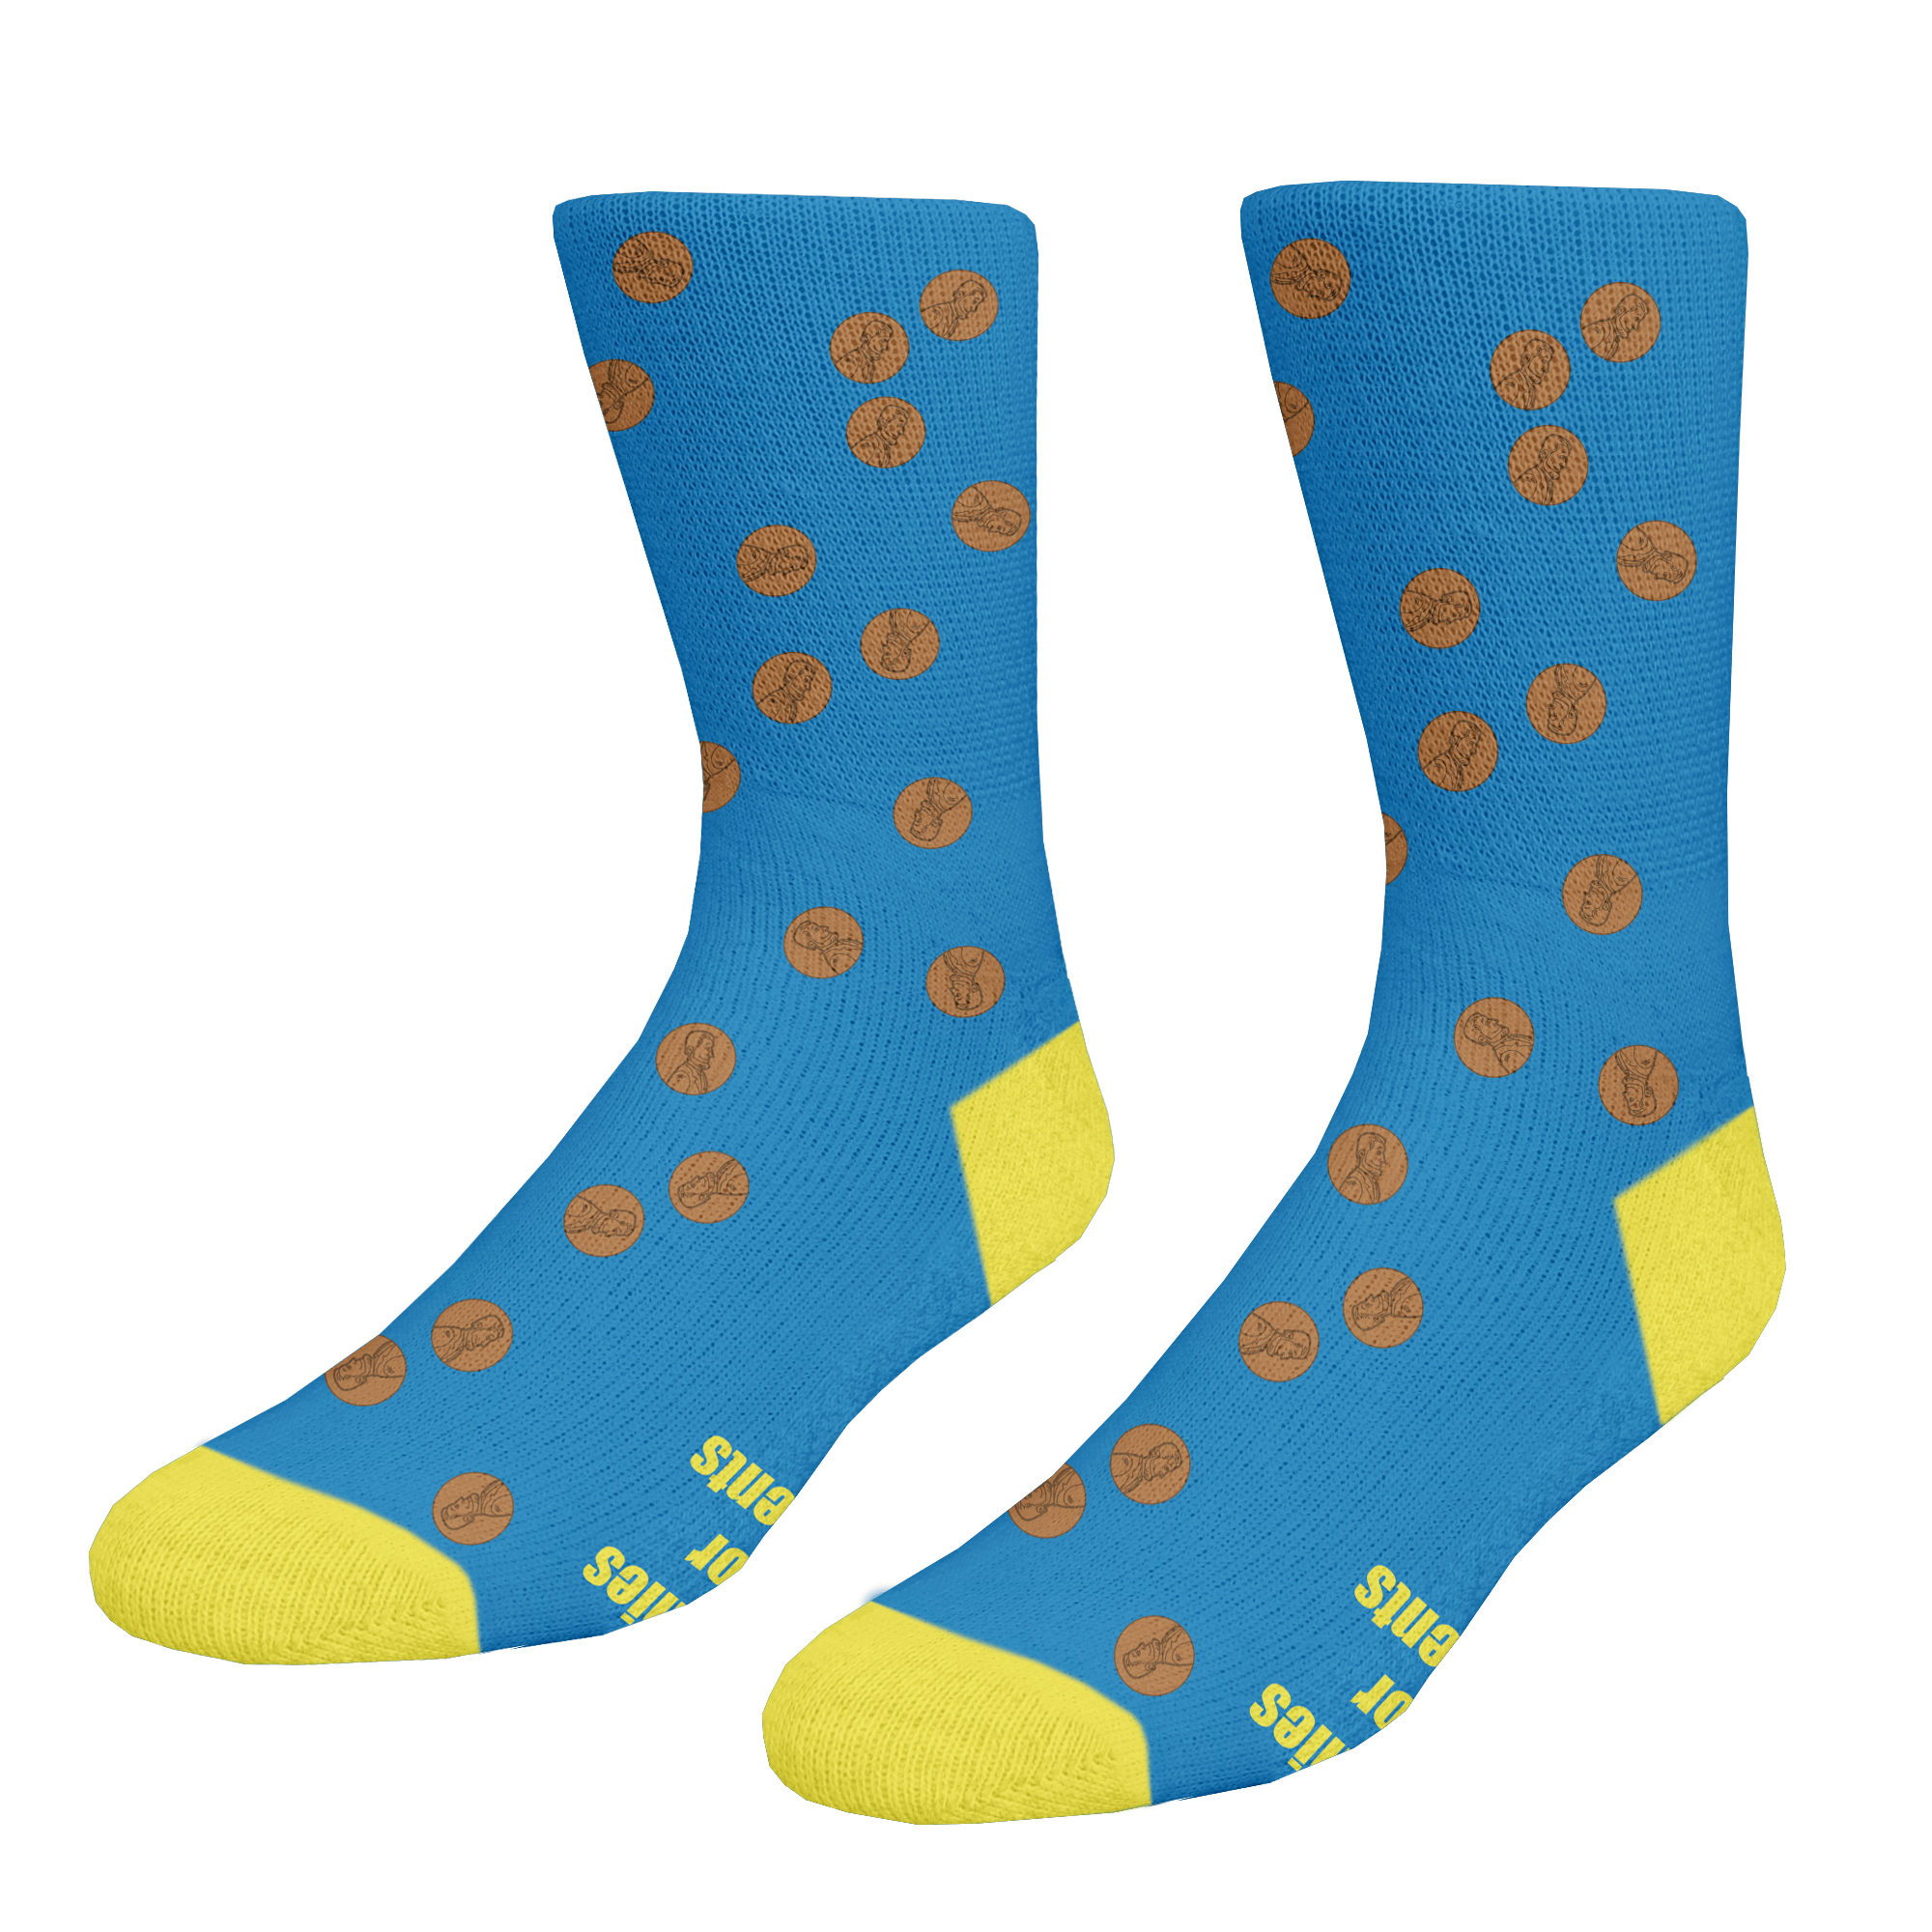 Pennies for Patients Socks